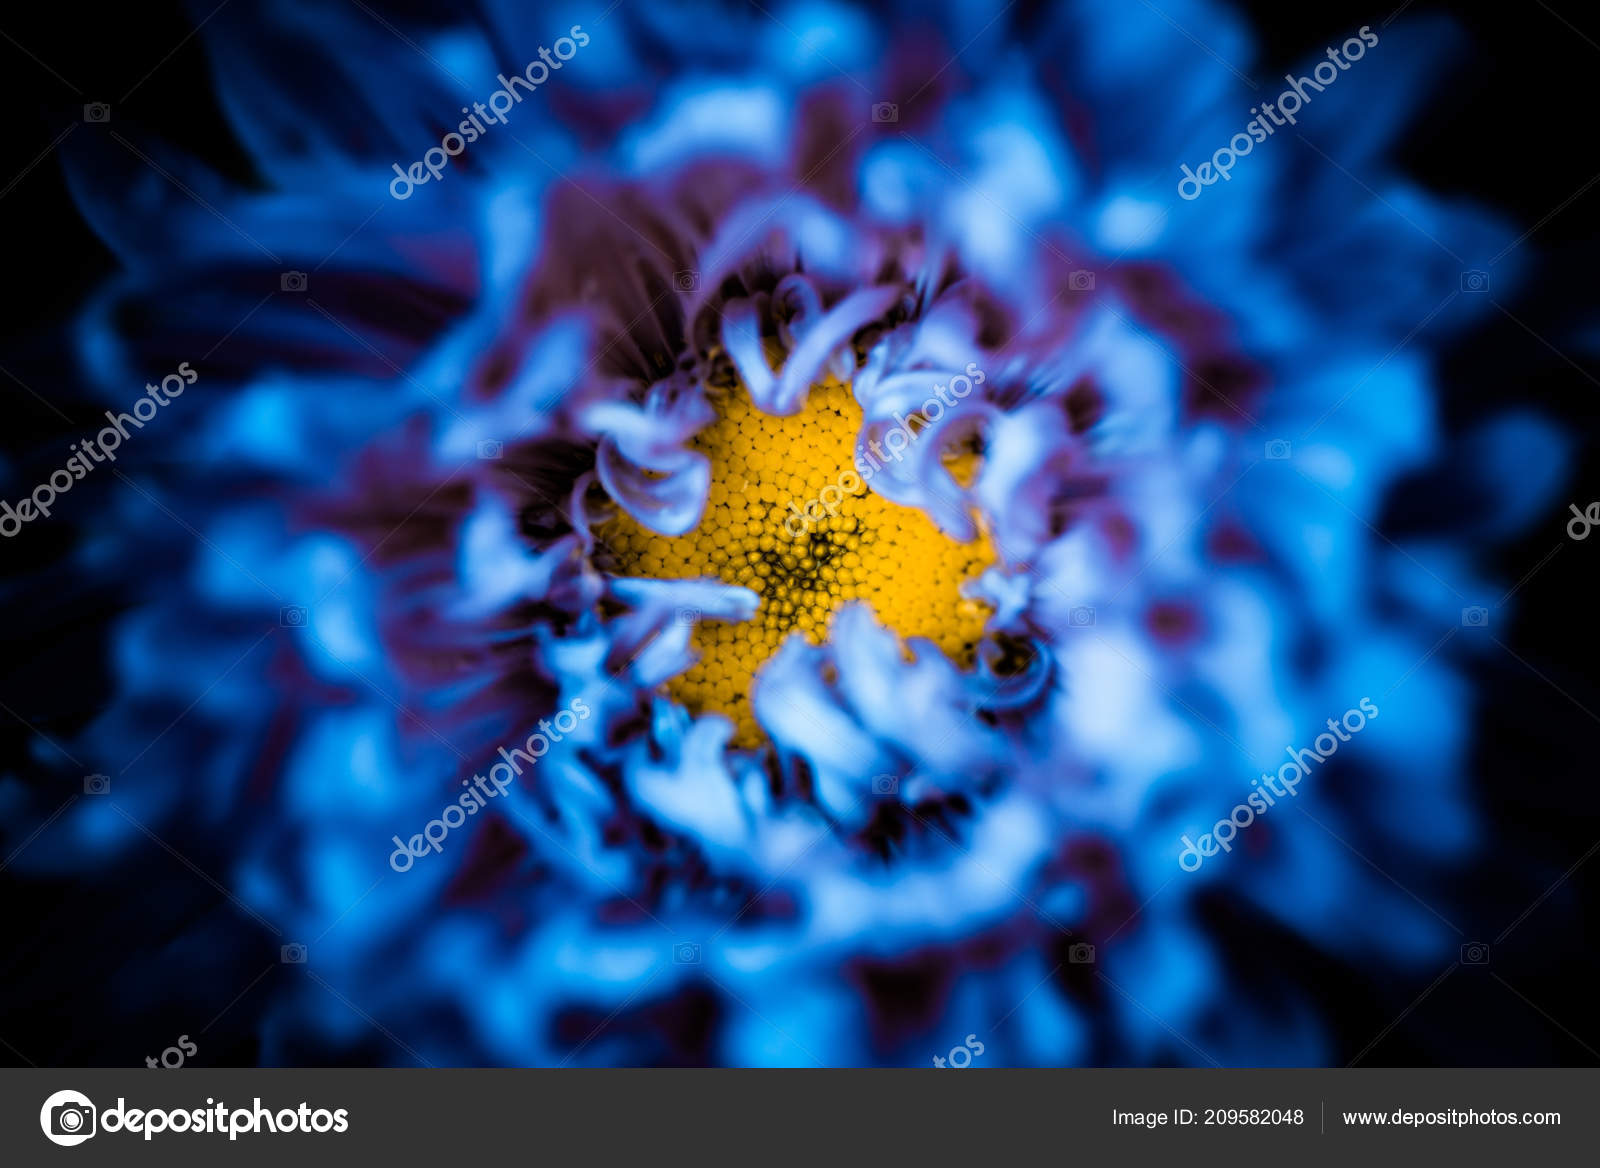 Yellow Center Abstract Blue Flower Leafs Background Stock Photo